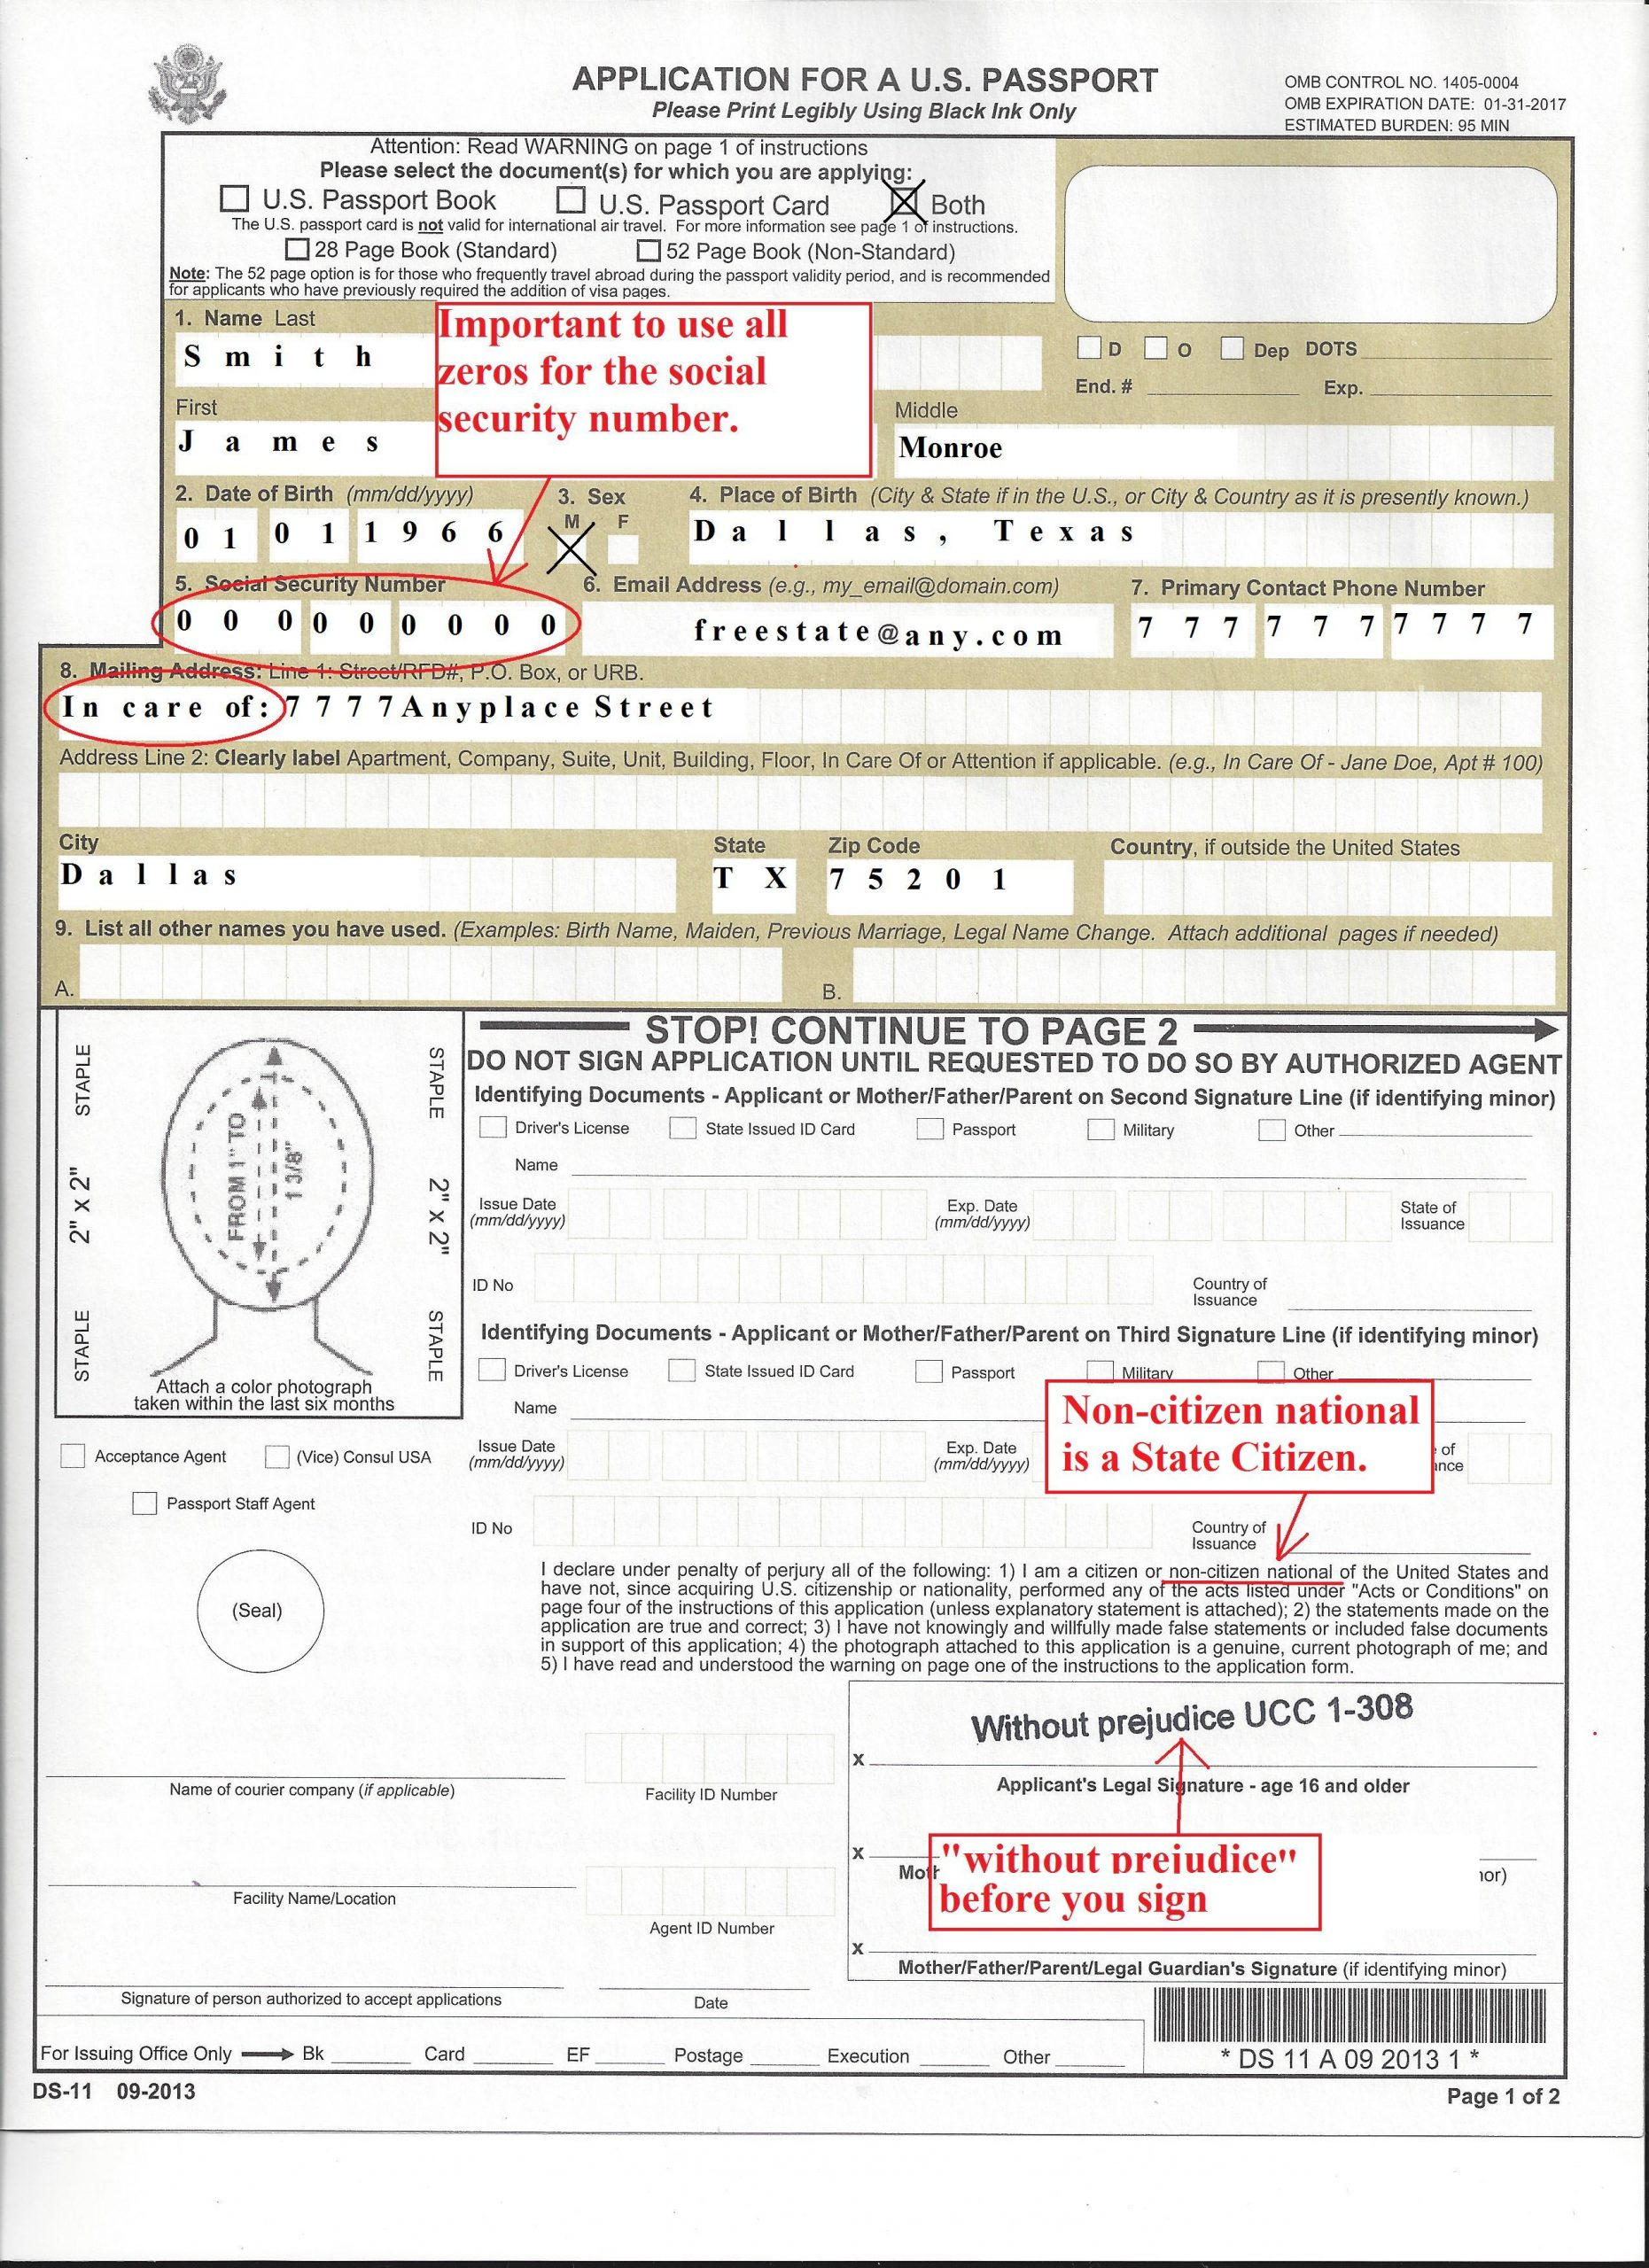 Passport To Fill Out Form Pictures To Pin On Pinterest